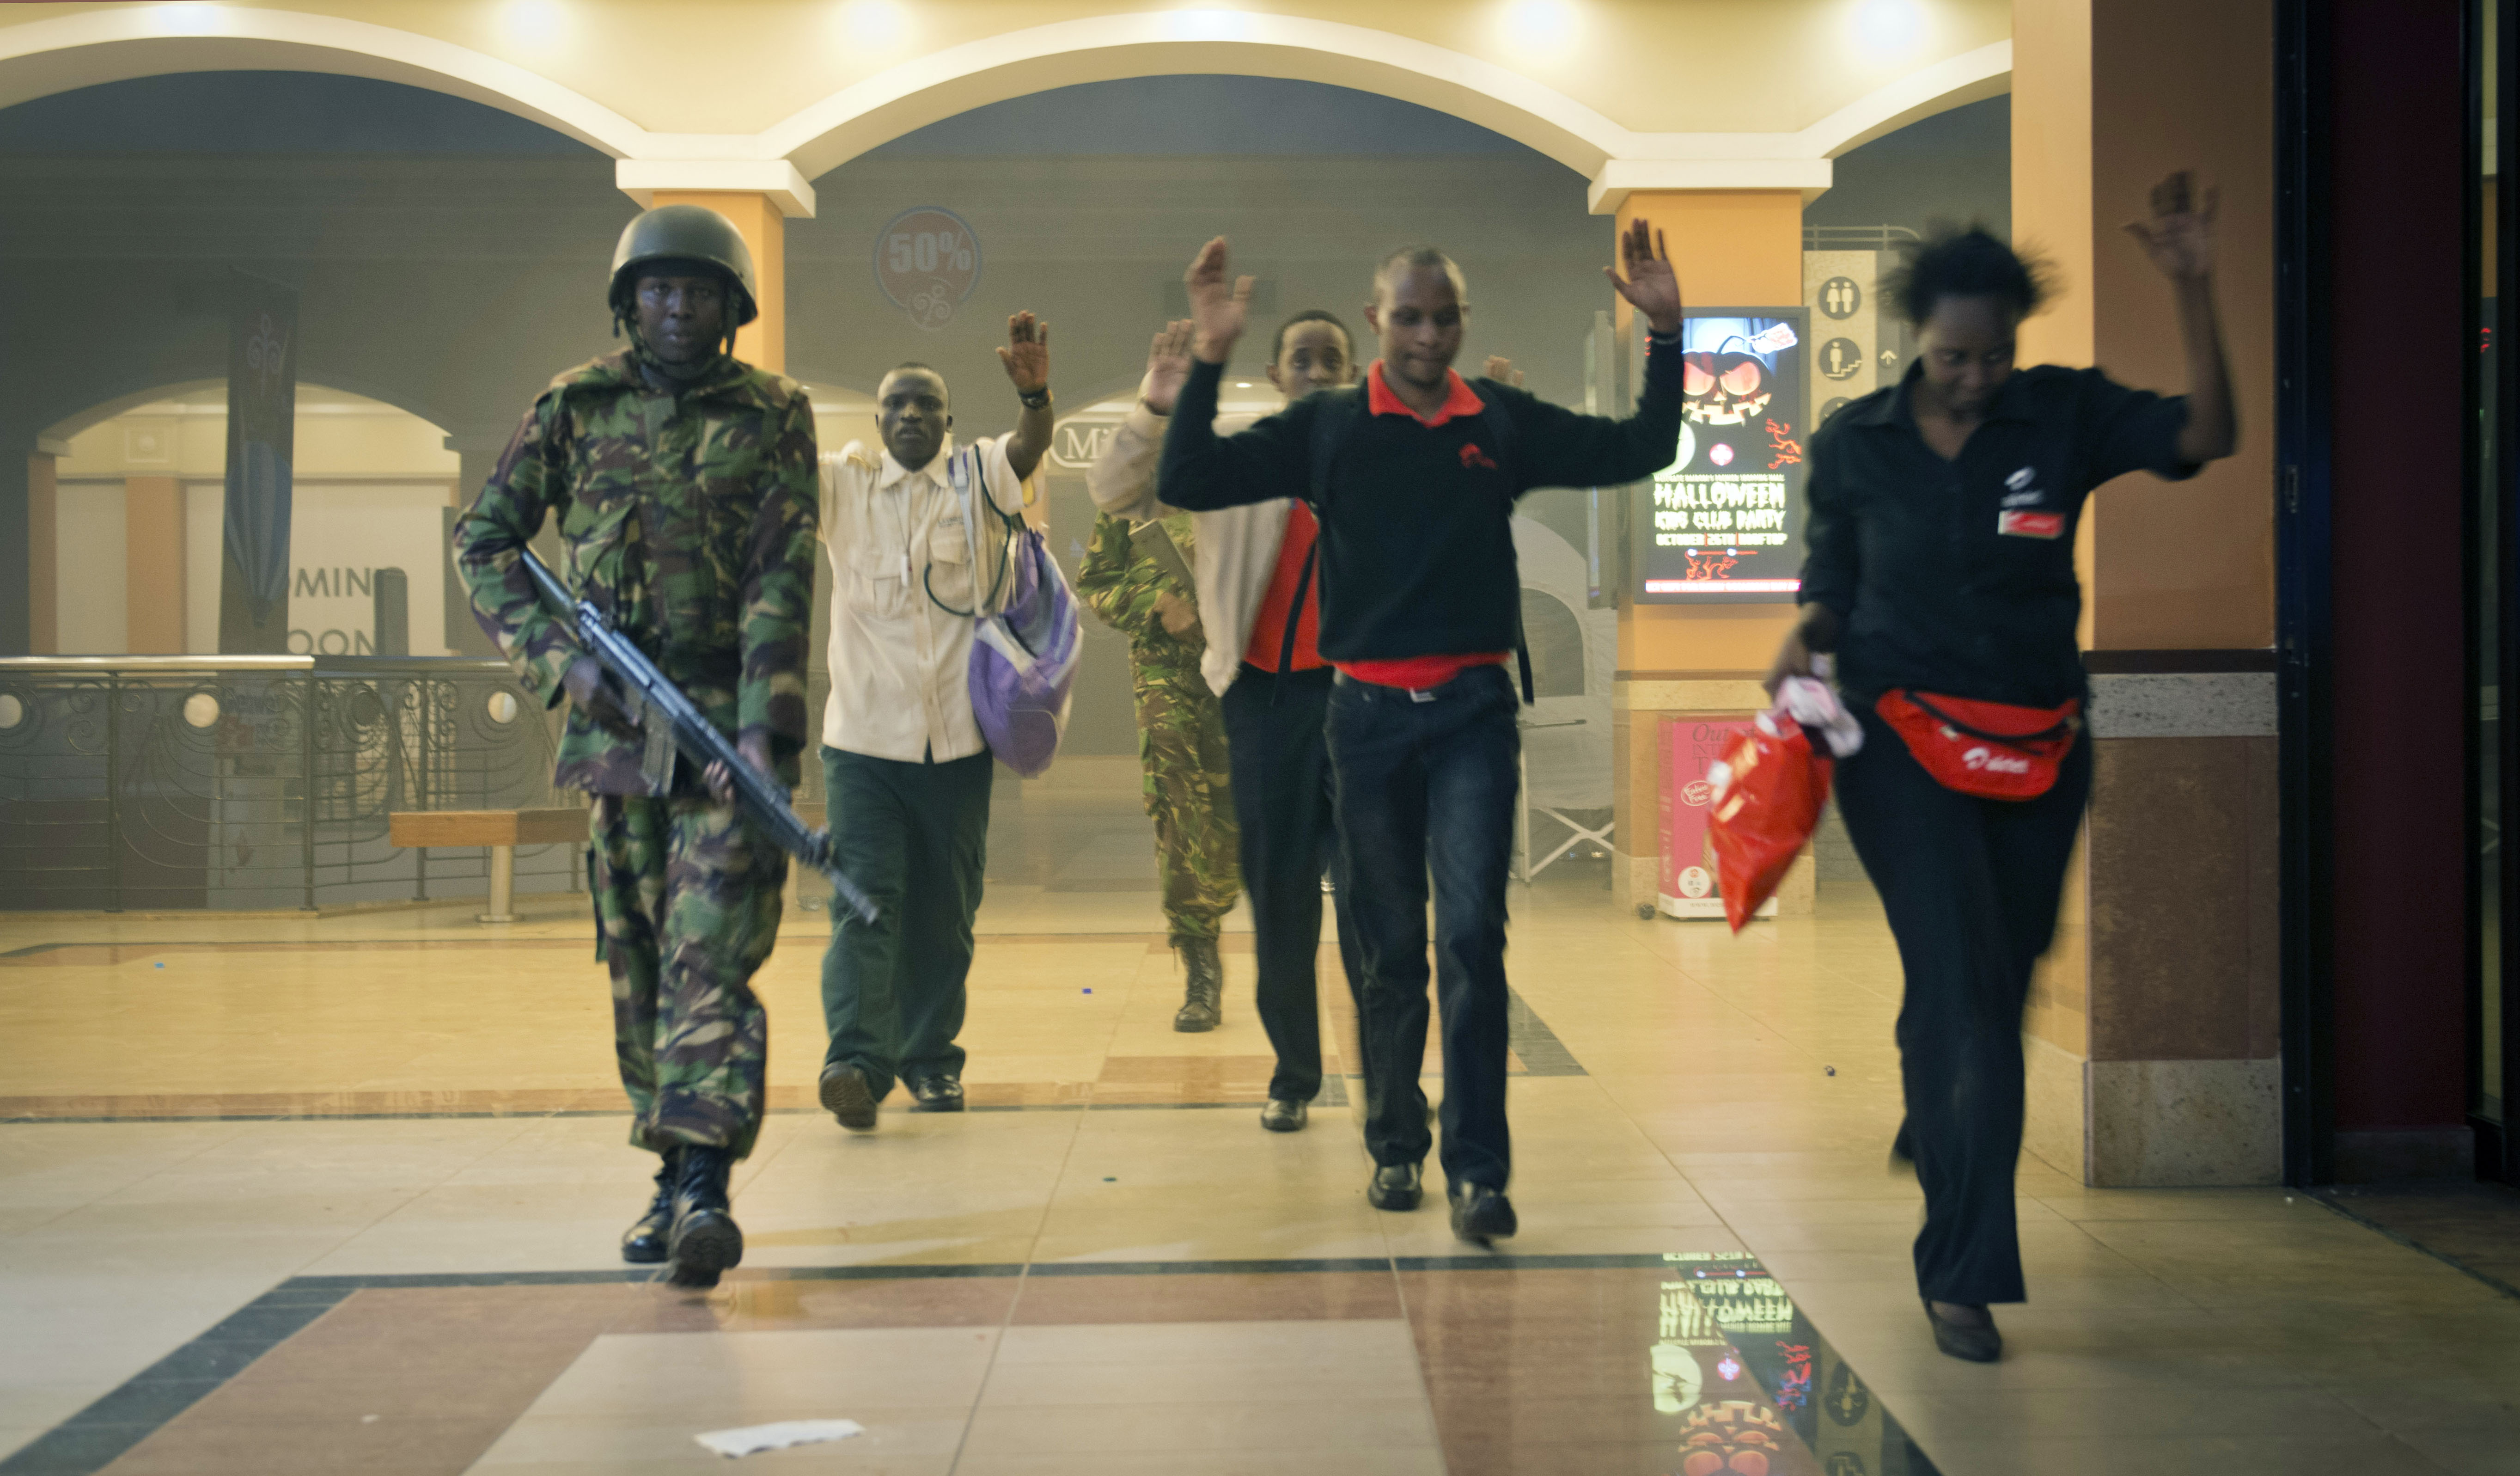 ThinkProgress: Four Questions The Kenyan Government Must Answer About The Mall Attack